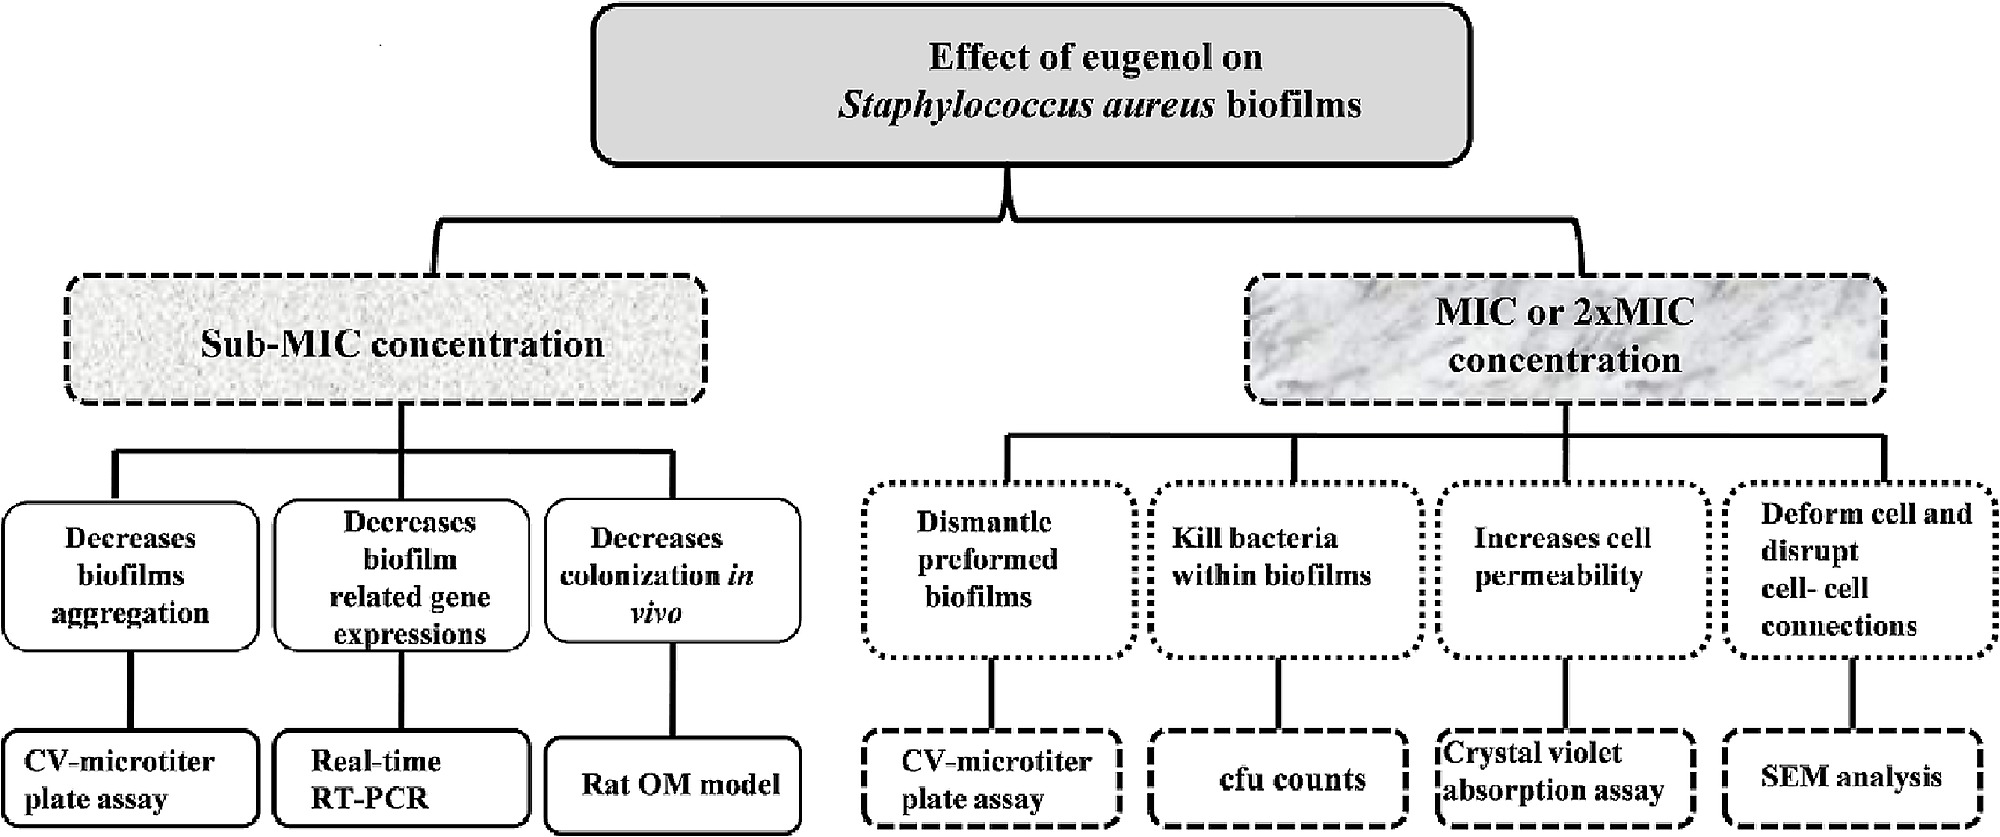 Systematic diagram showing effect of eugenol on Staphylococcus ...